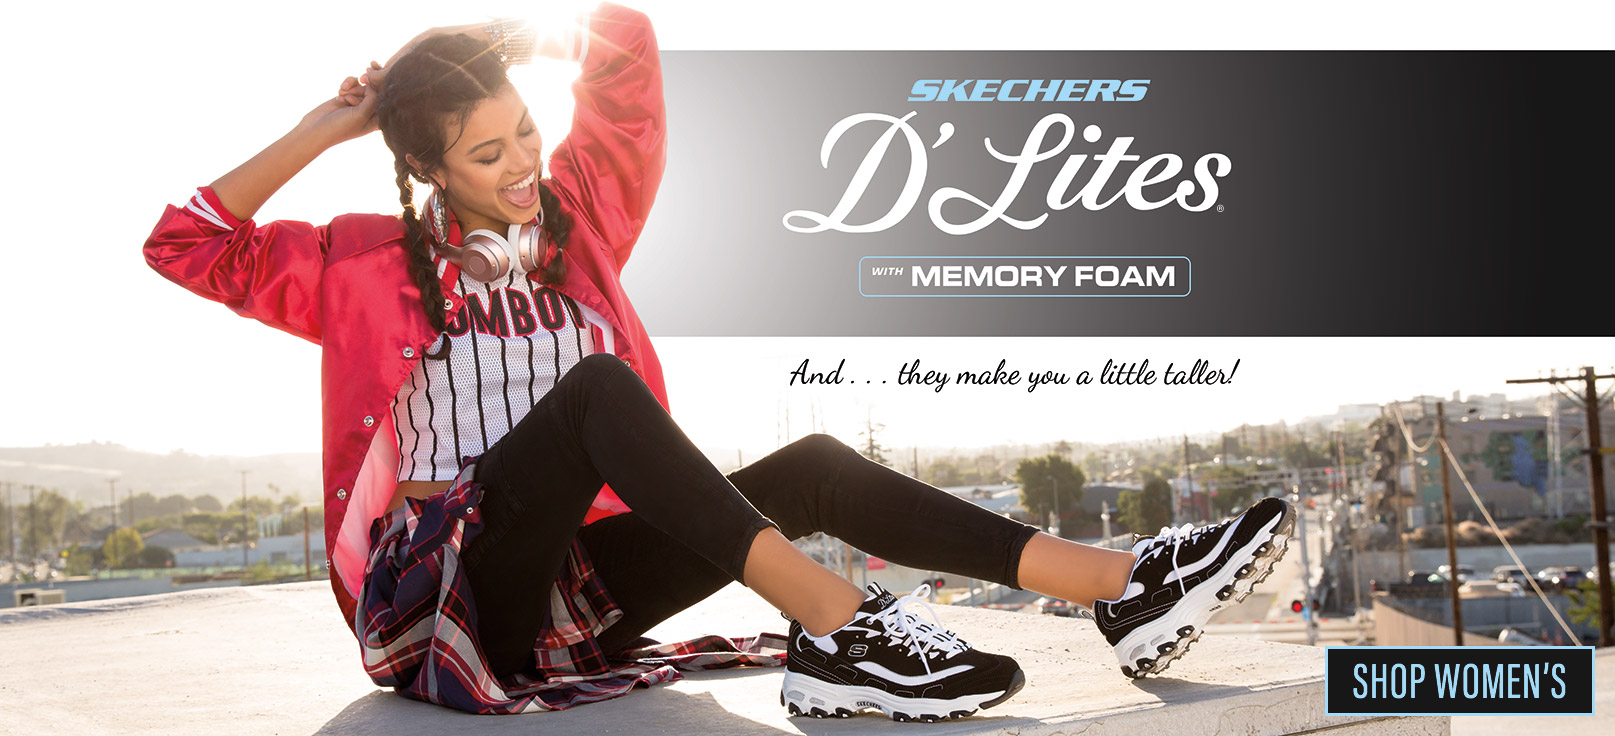 Shop for Kids Back to School Skechers Shoes, Boots, and Sandals including Skechers Burst, D'lites, GOwalk, Relaxed Fit and Memory Foam.  All sizes and widths available.